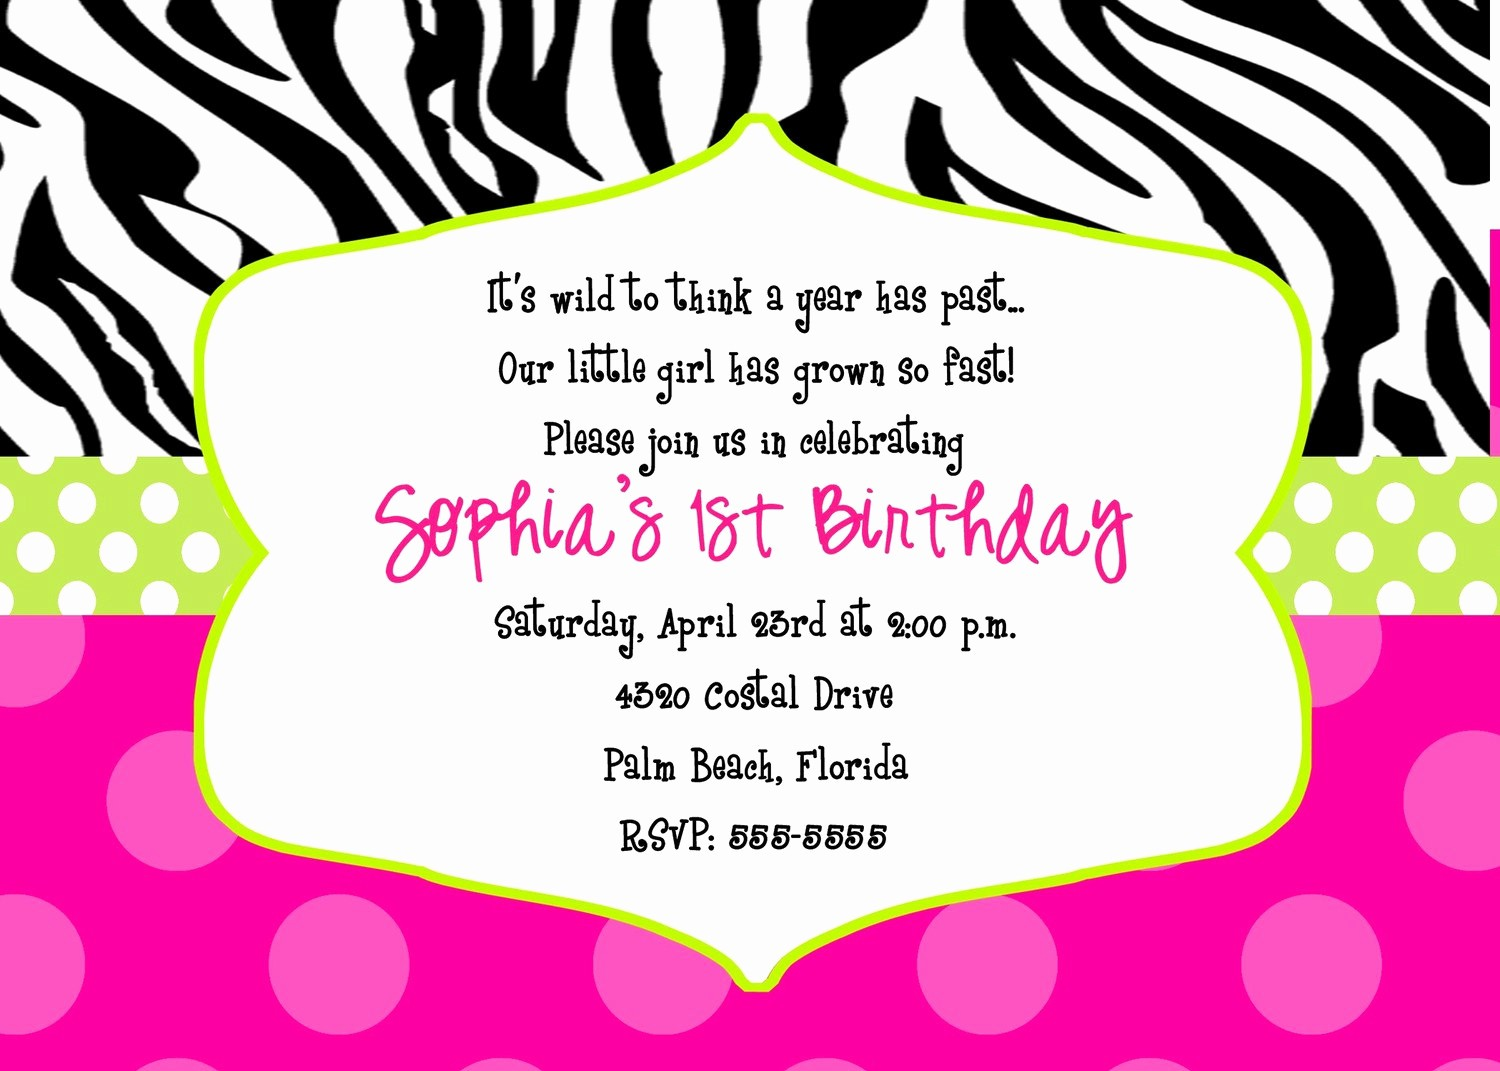 Free 40th Birthday Invitations Templates Best Of 40th Birthday Ideas Free Zebra Print Birthday Invitation